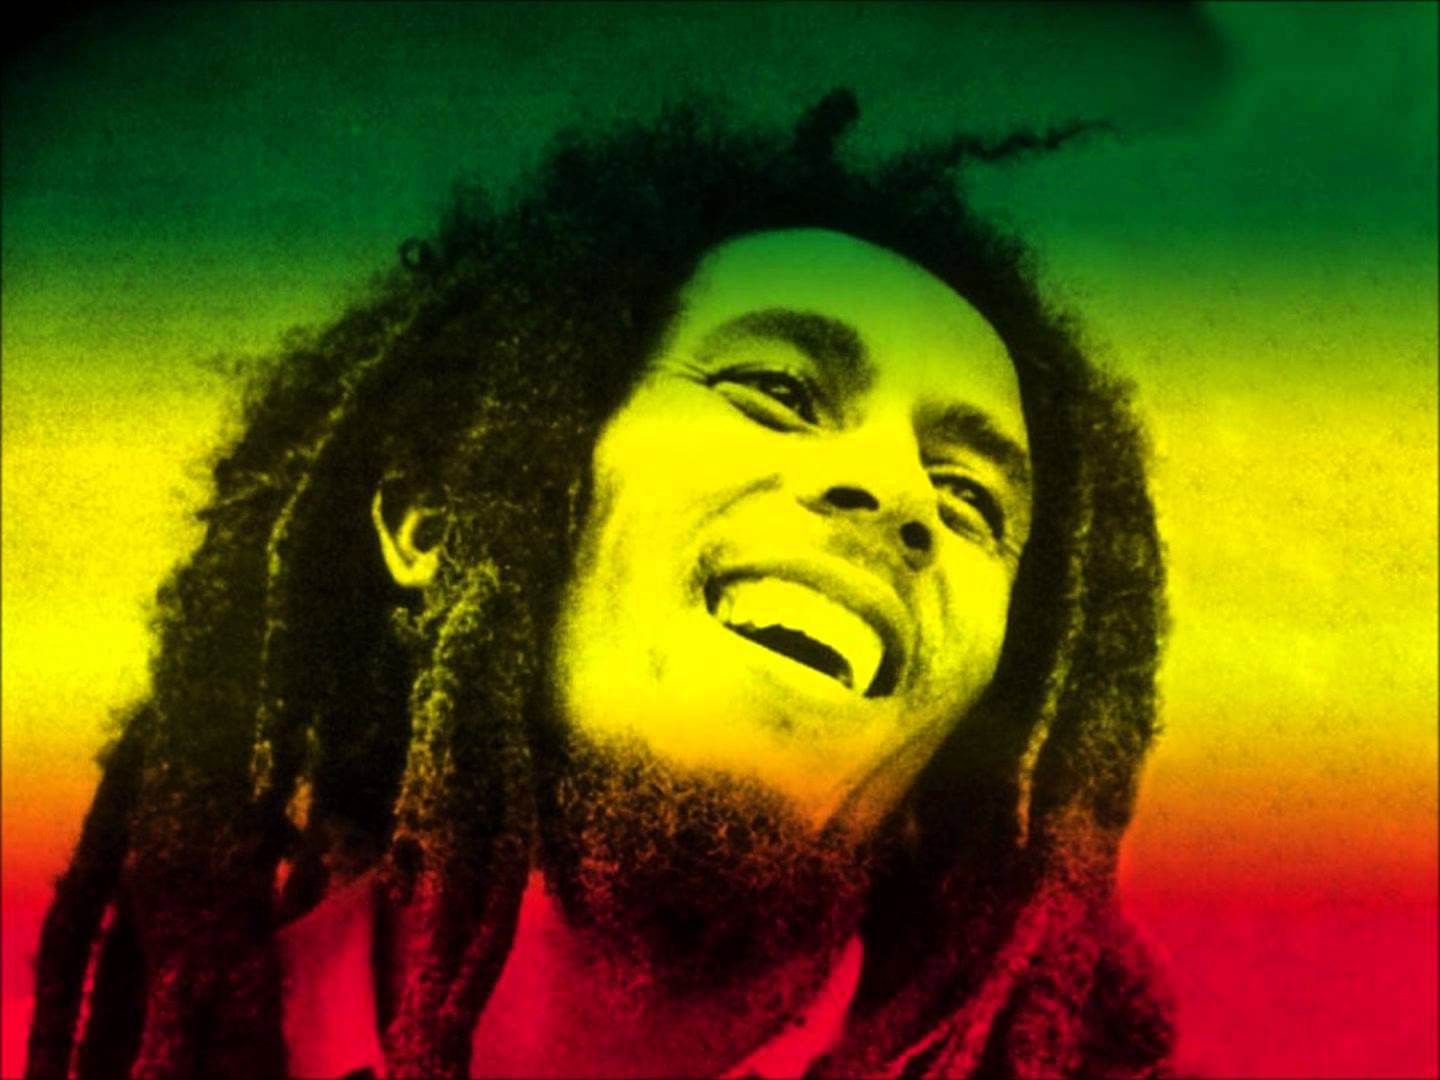 Happy Birthday to the legend, Happy birthday to Bob Marley